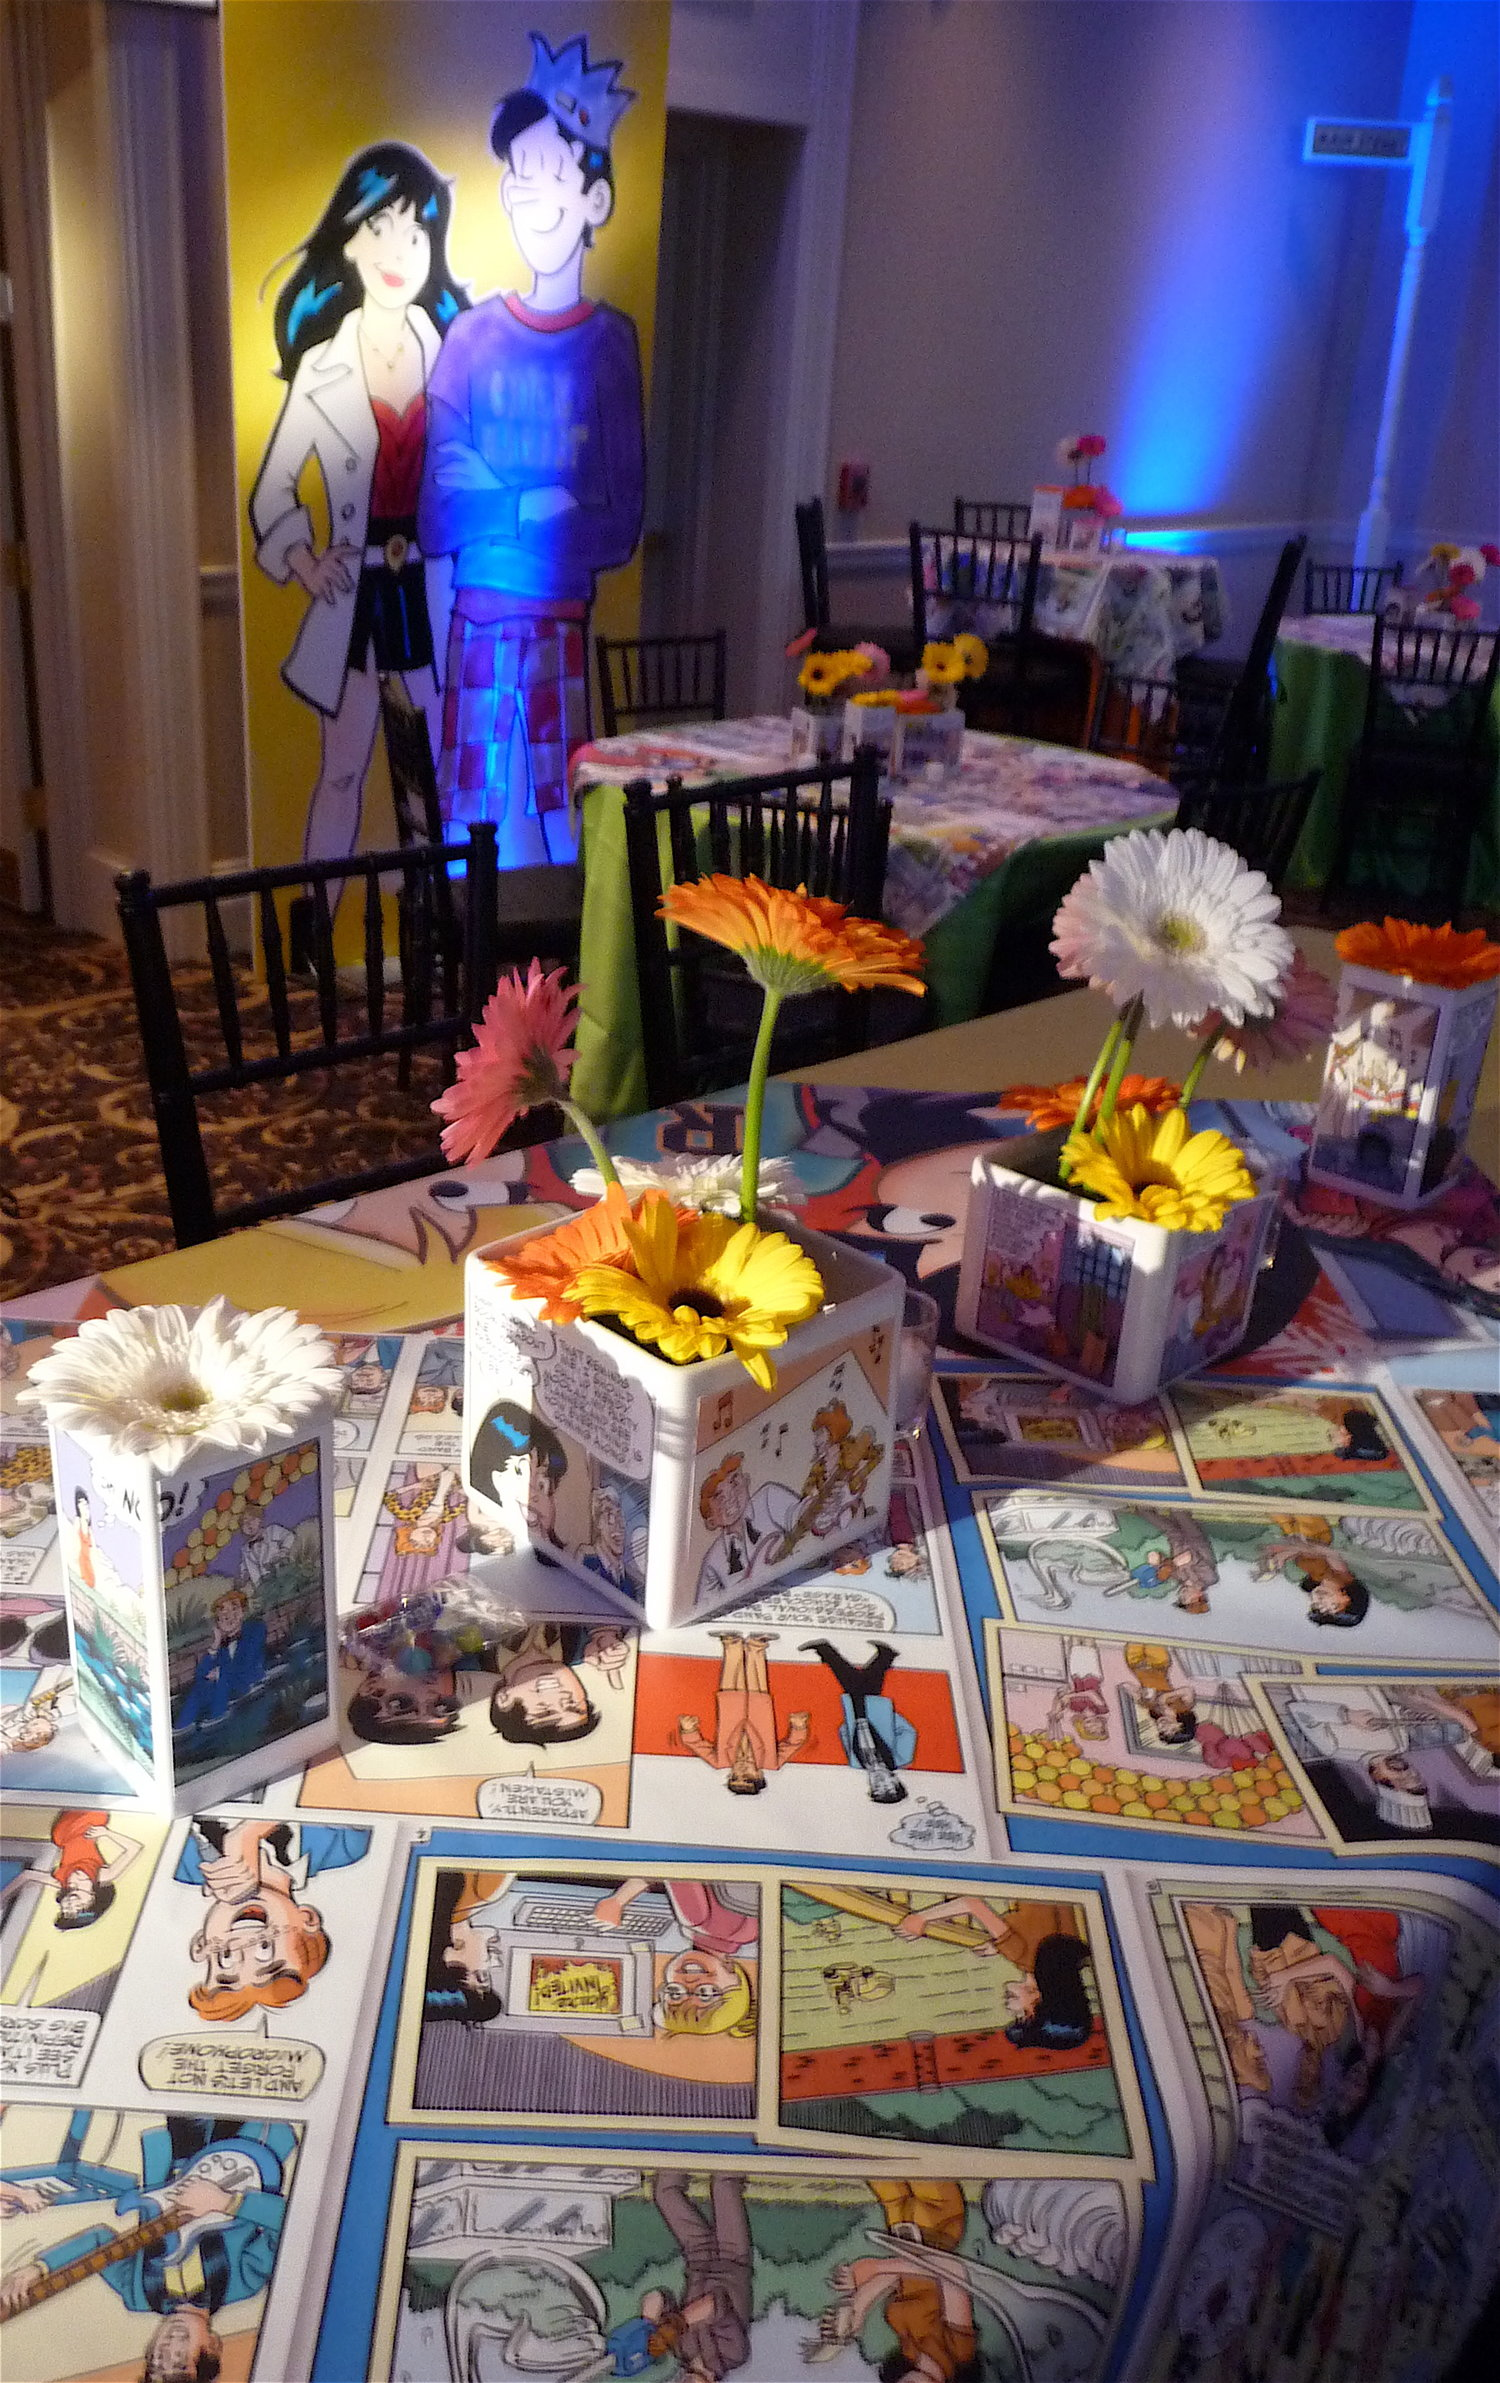 NJ+theme+party+themed+parties+NY+PA+event+decor+rentals+eggsotic+events+Archie.jpg